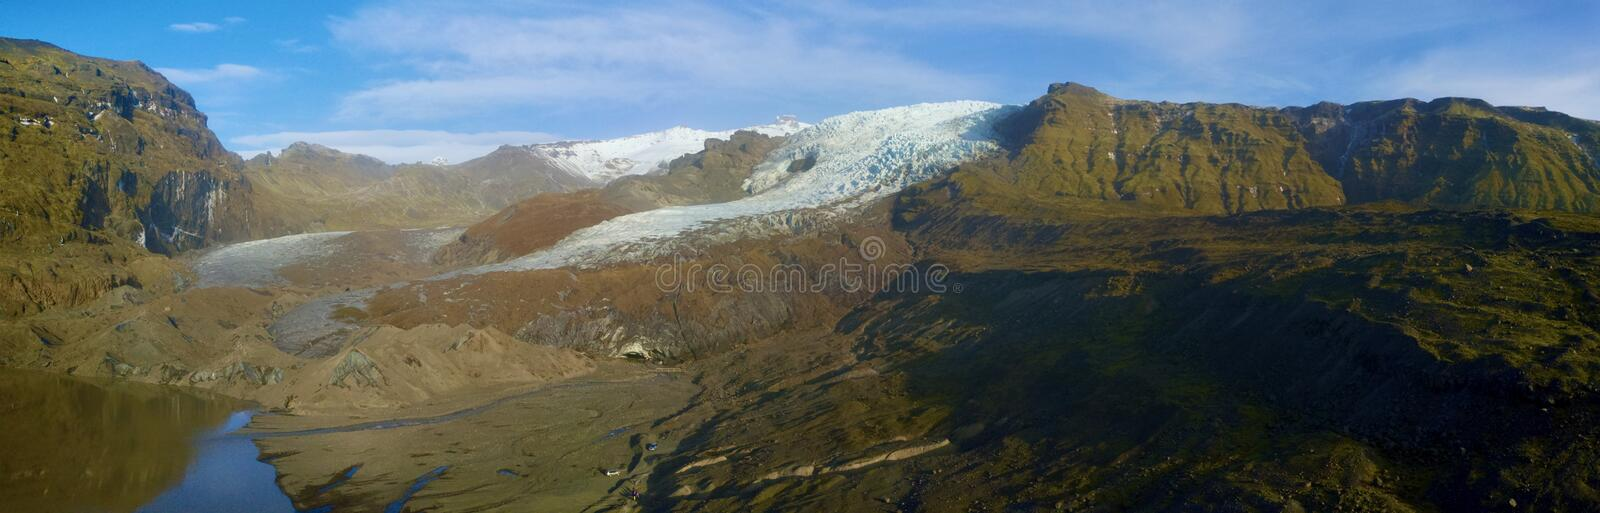 Iceland Glacier Cave a bird eye aerial view from drone stock photos